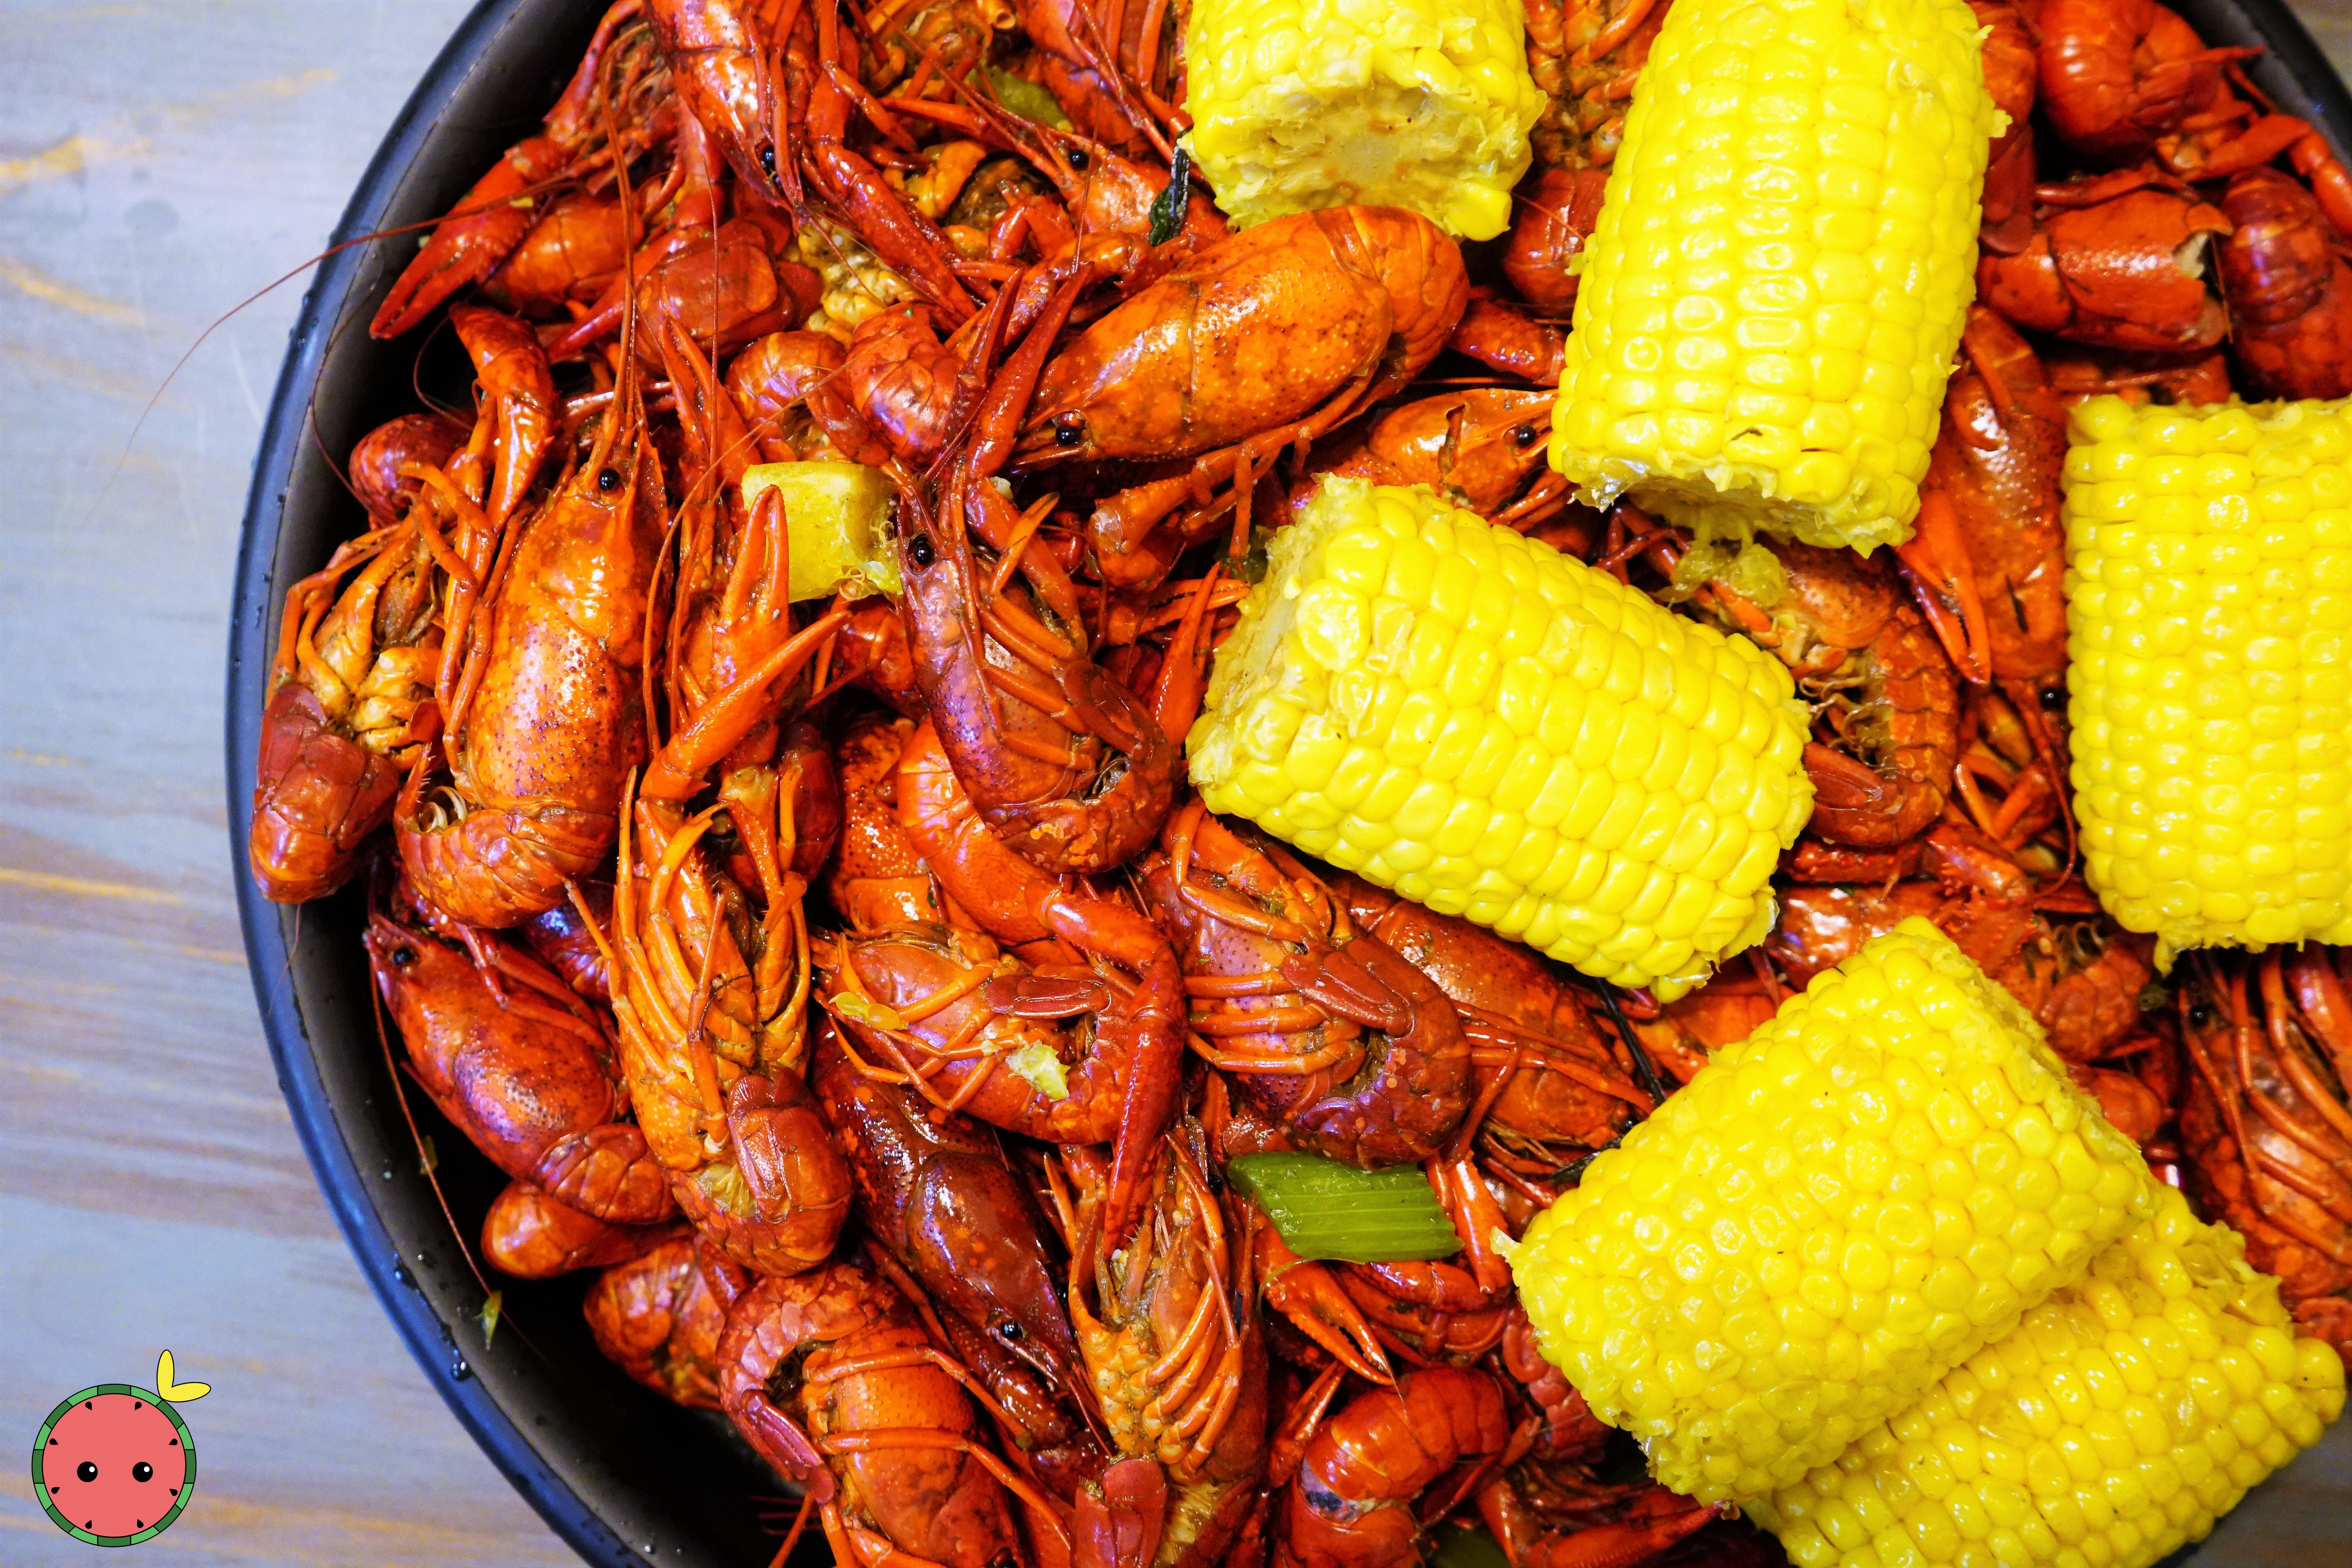 Crawfish (5lbs) & Corn